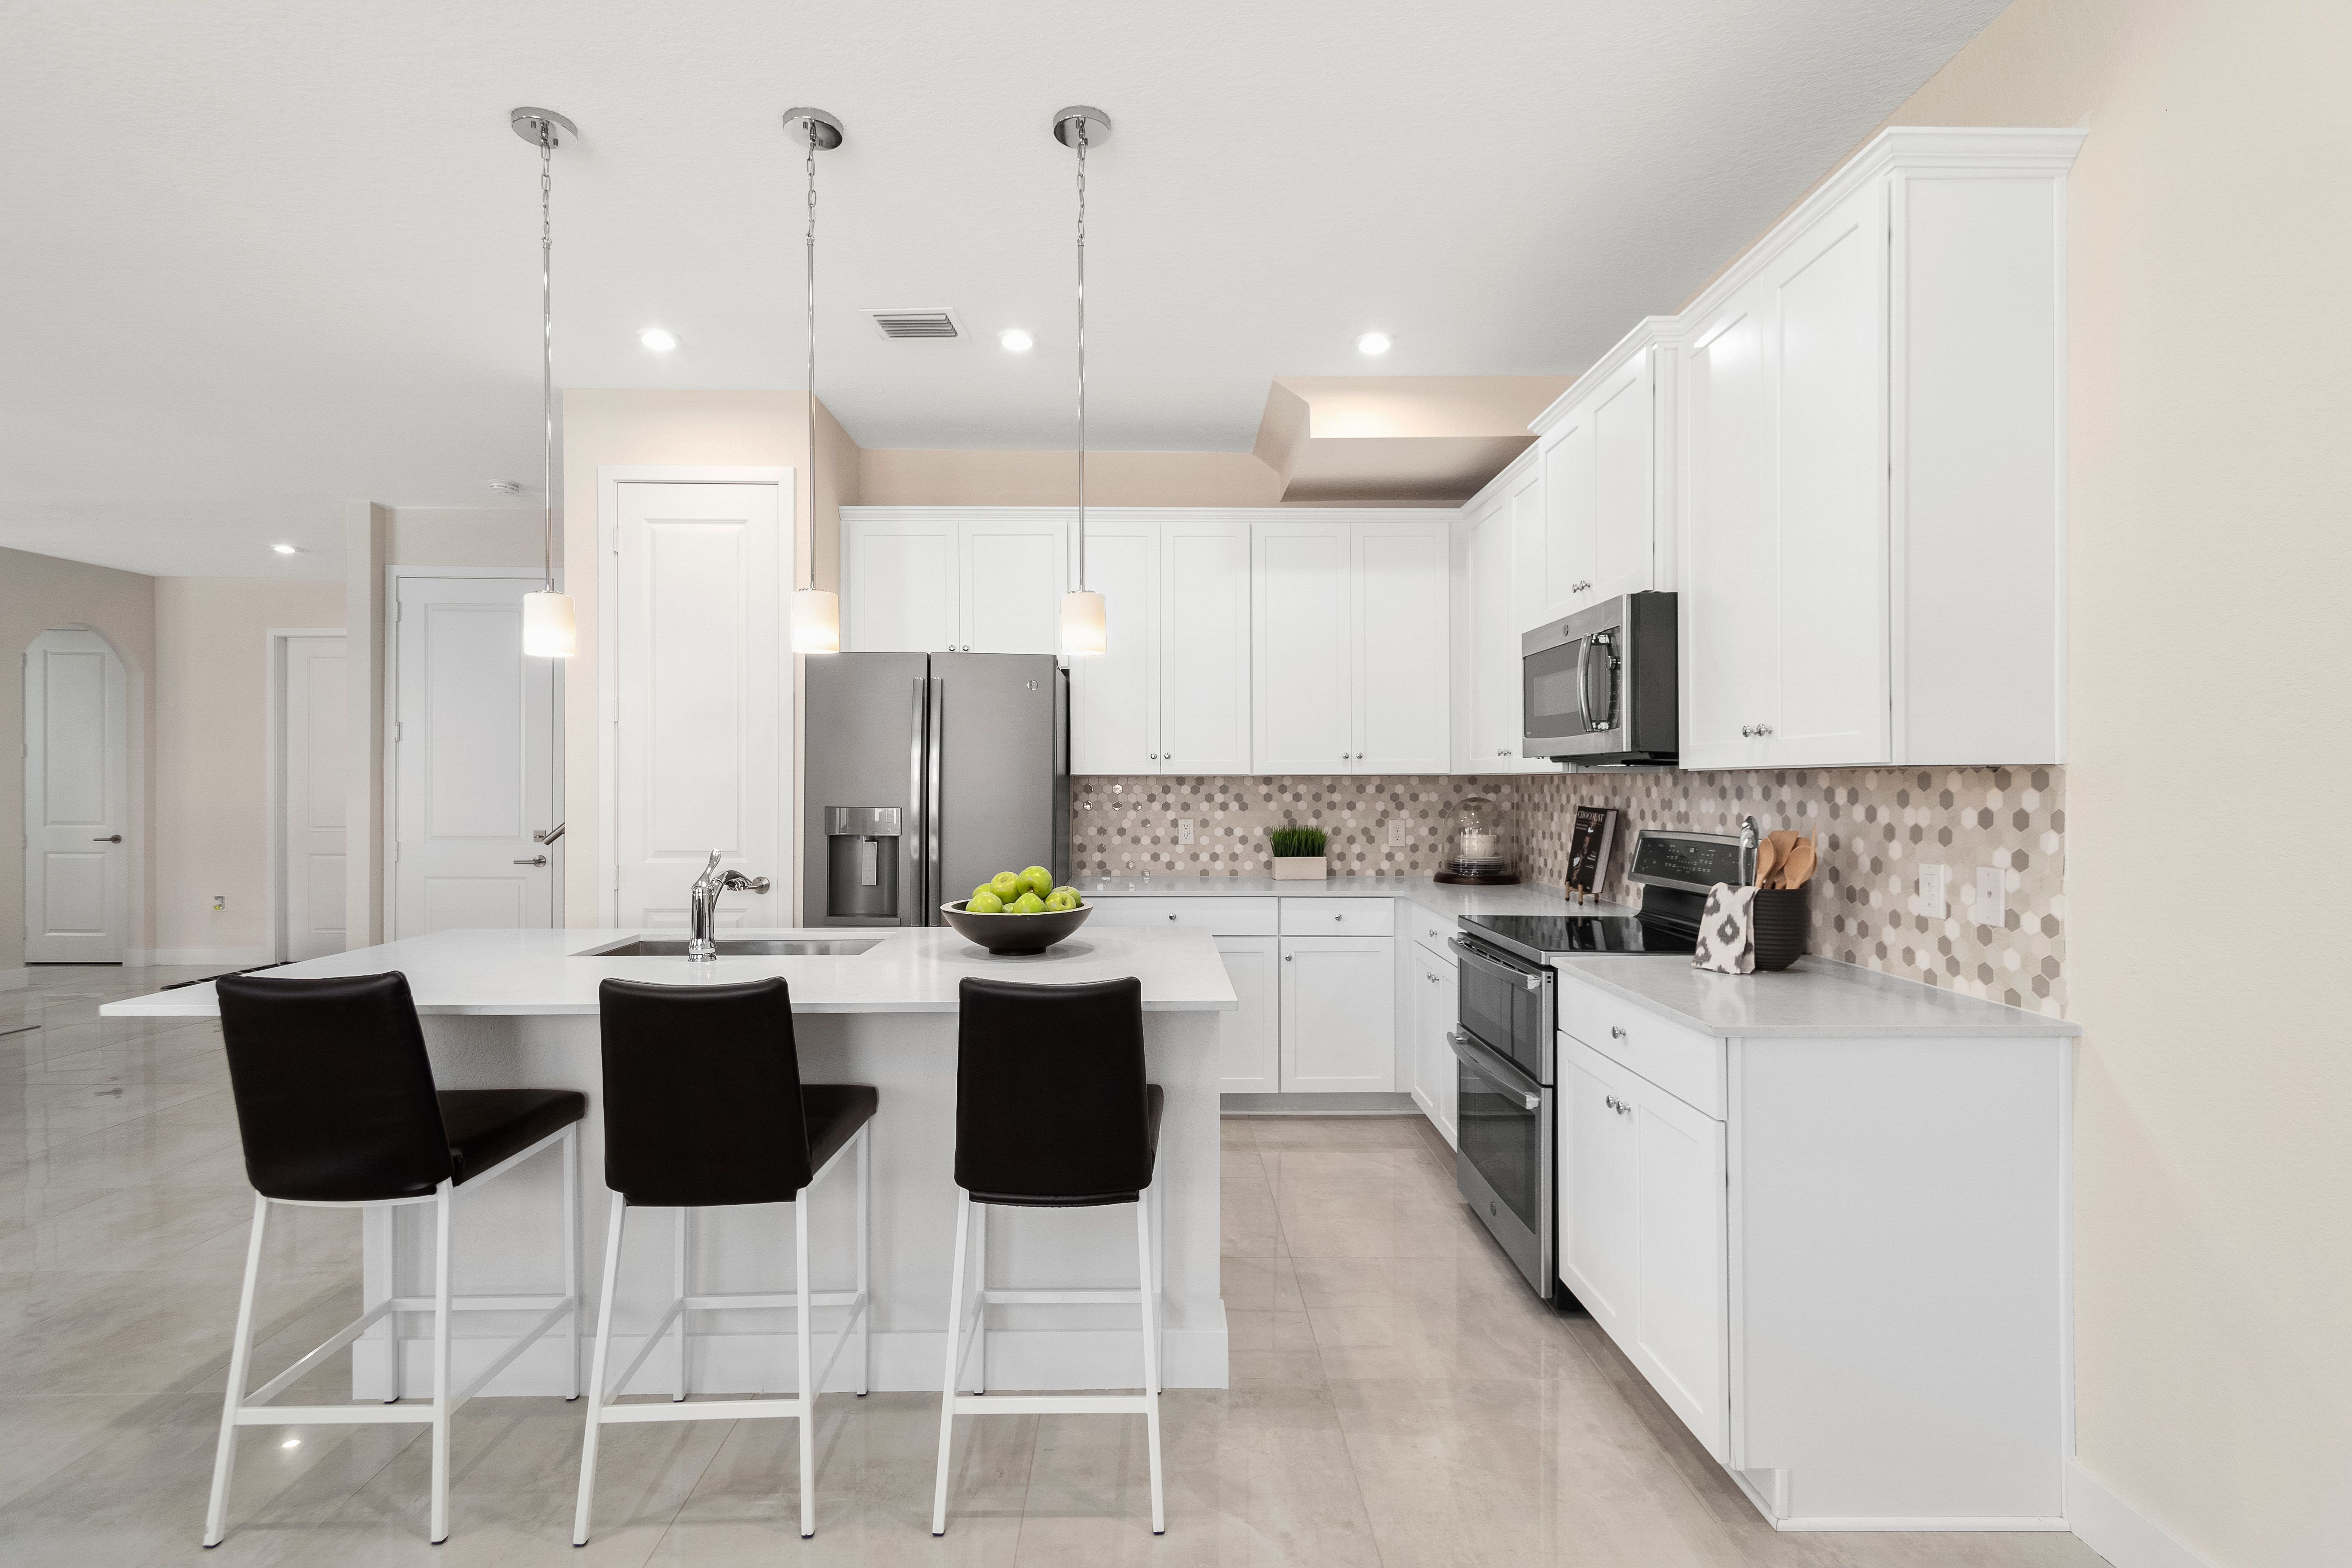 Kitchen featured in the Valencia By Ryan Homes in Miami-Dade County, FL